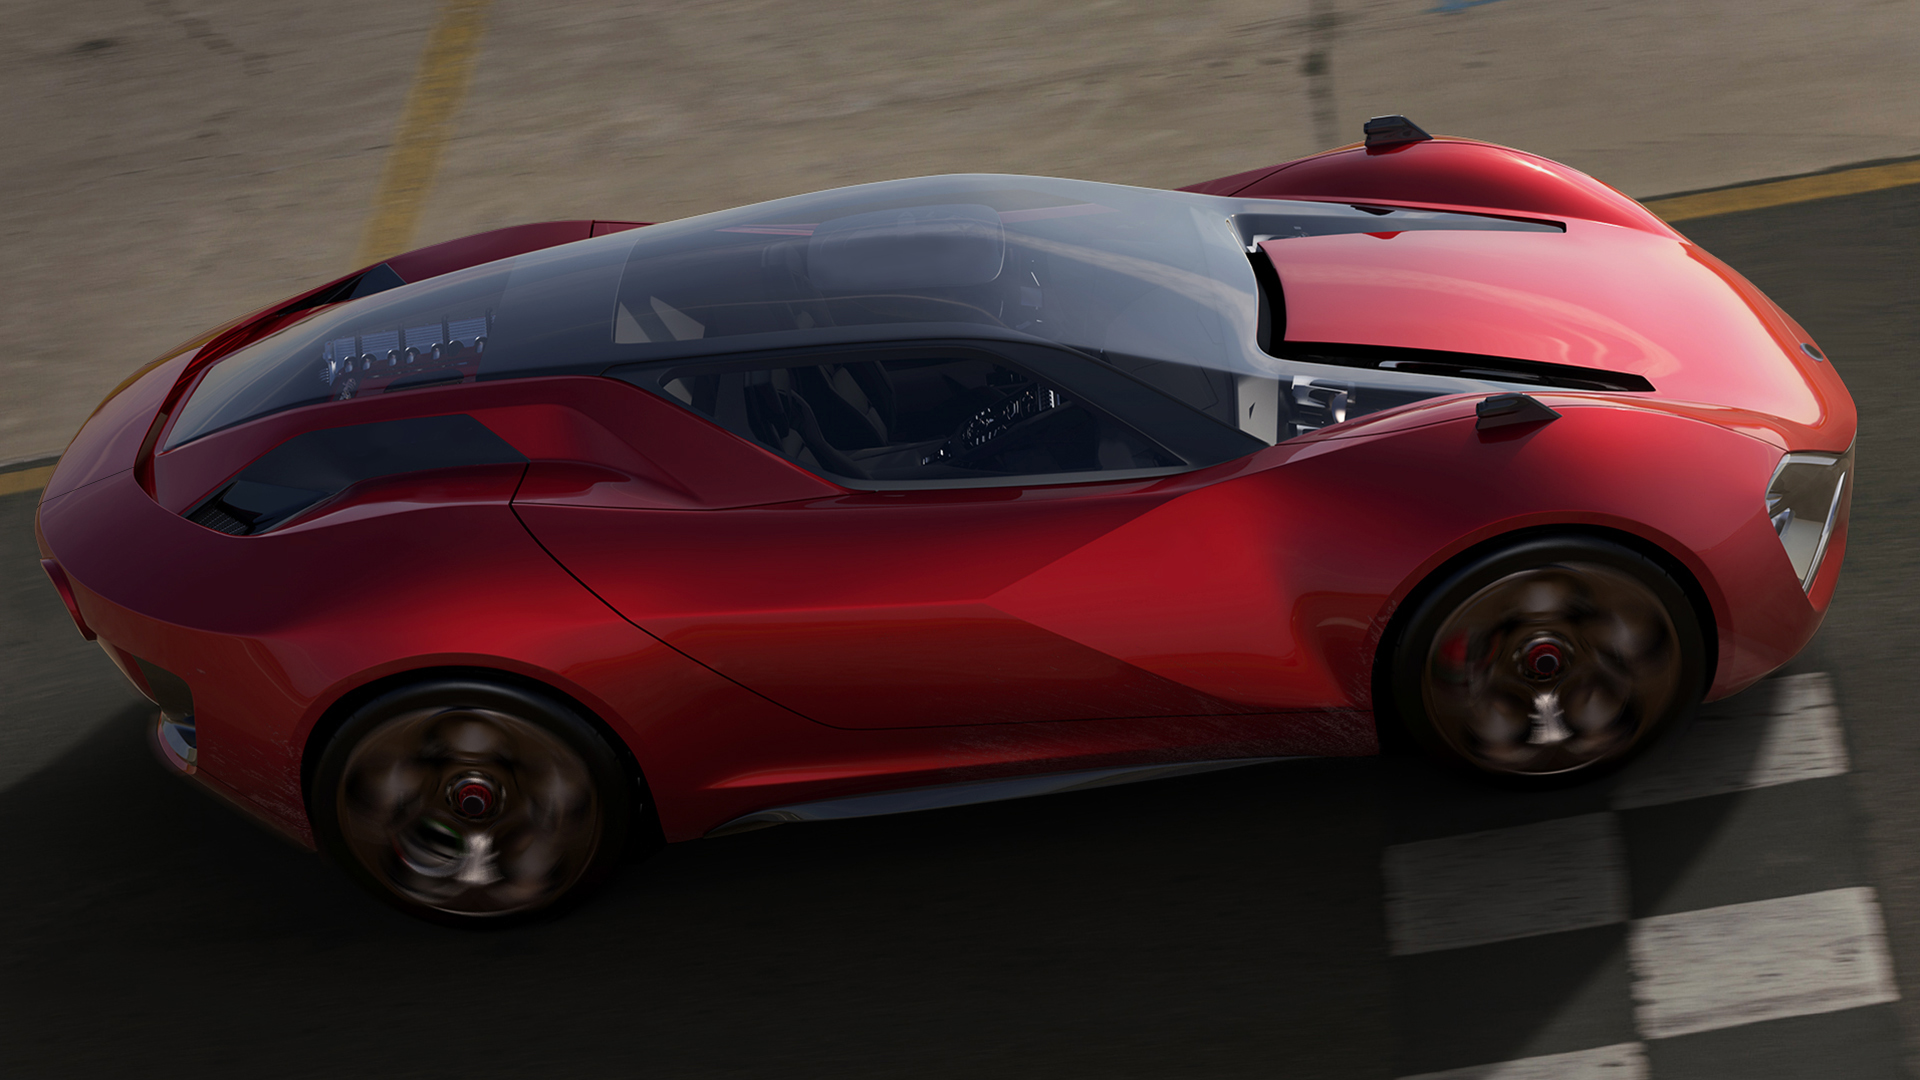 red sporty car driving on racetrack from side view